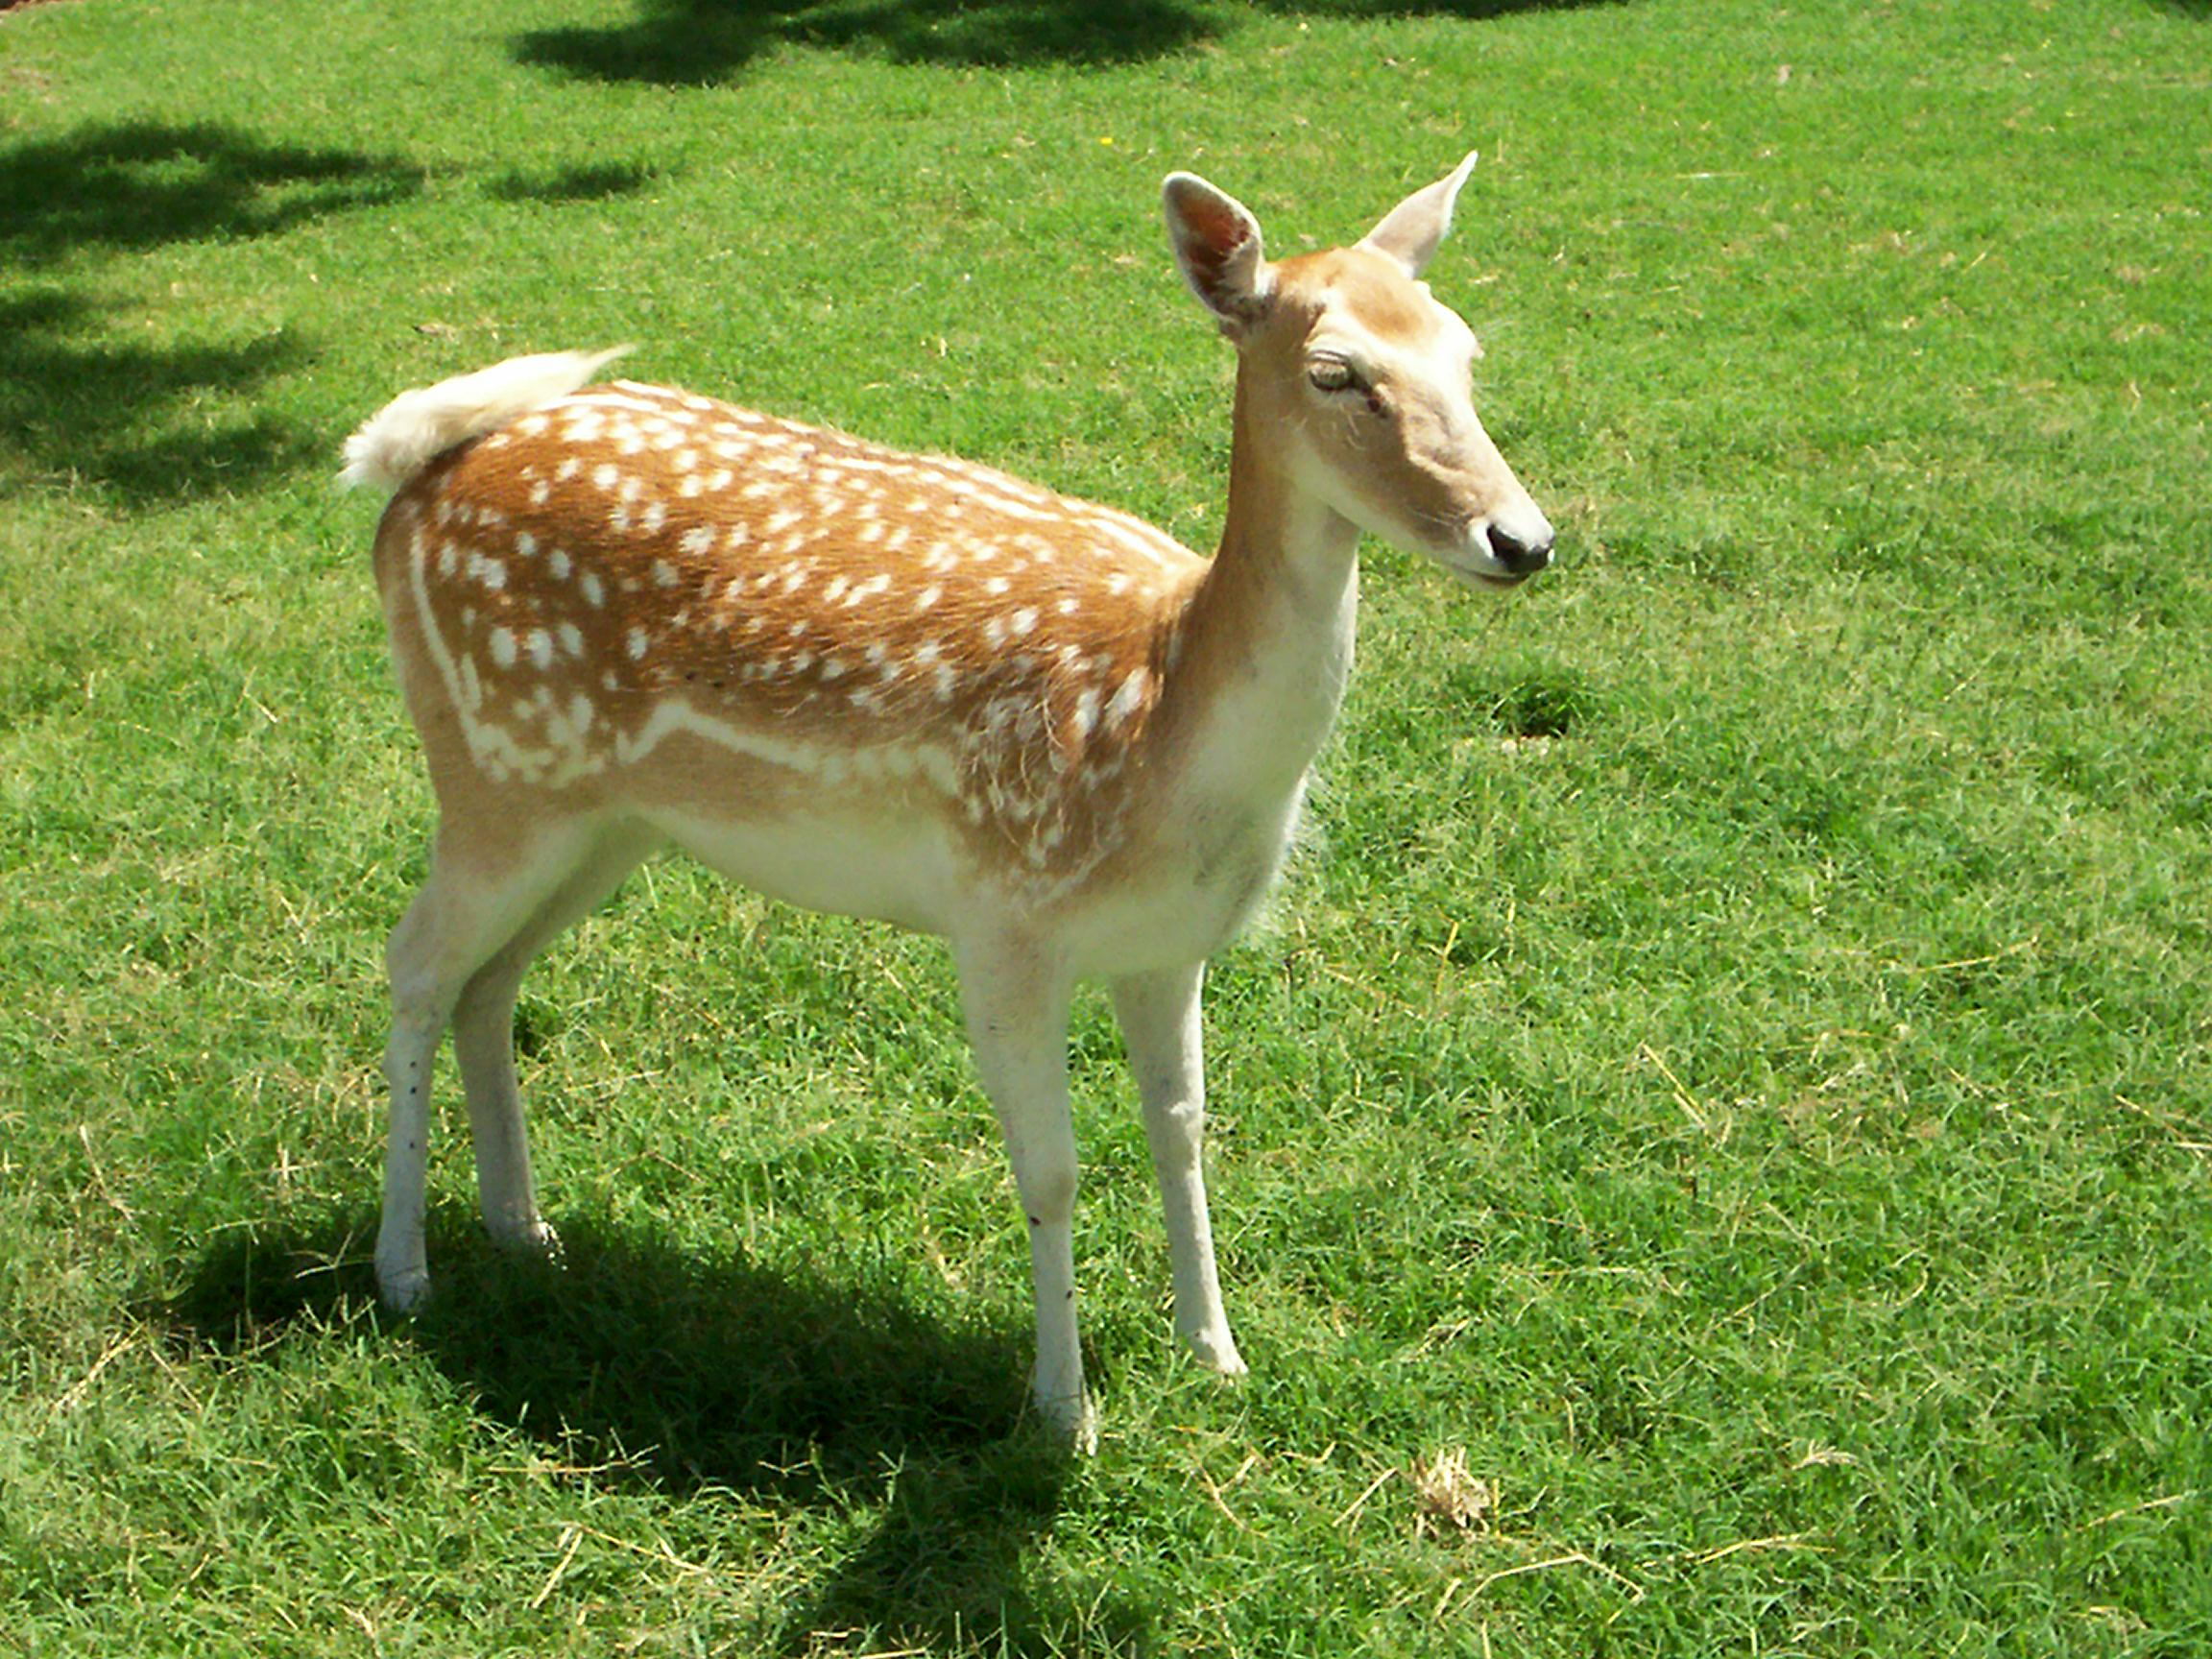 Deer Wallpapers. Images and animals Deer pictures (647)